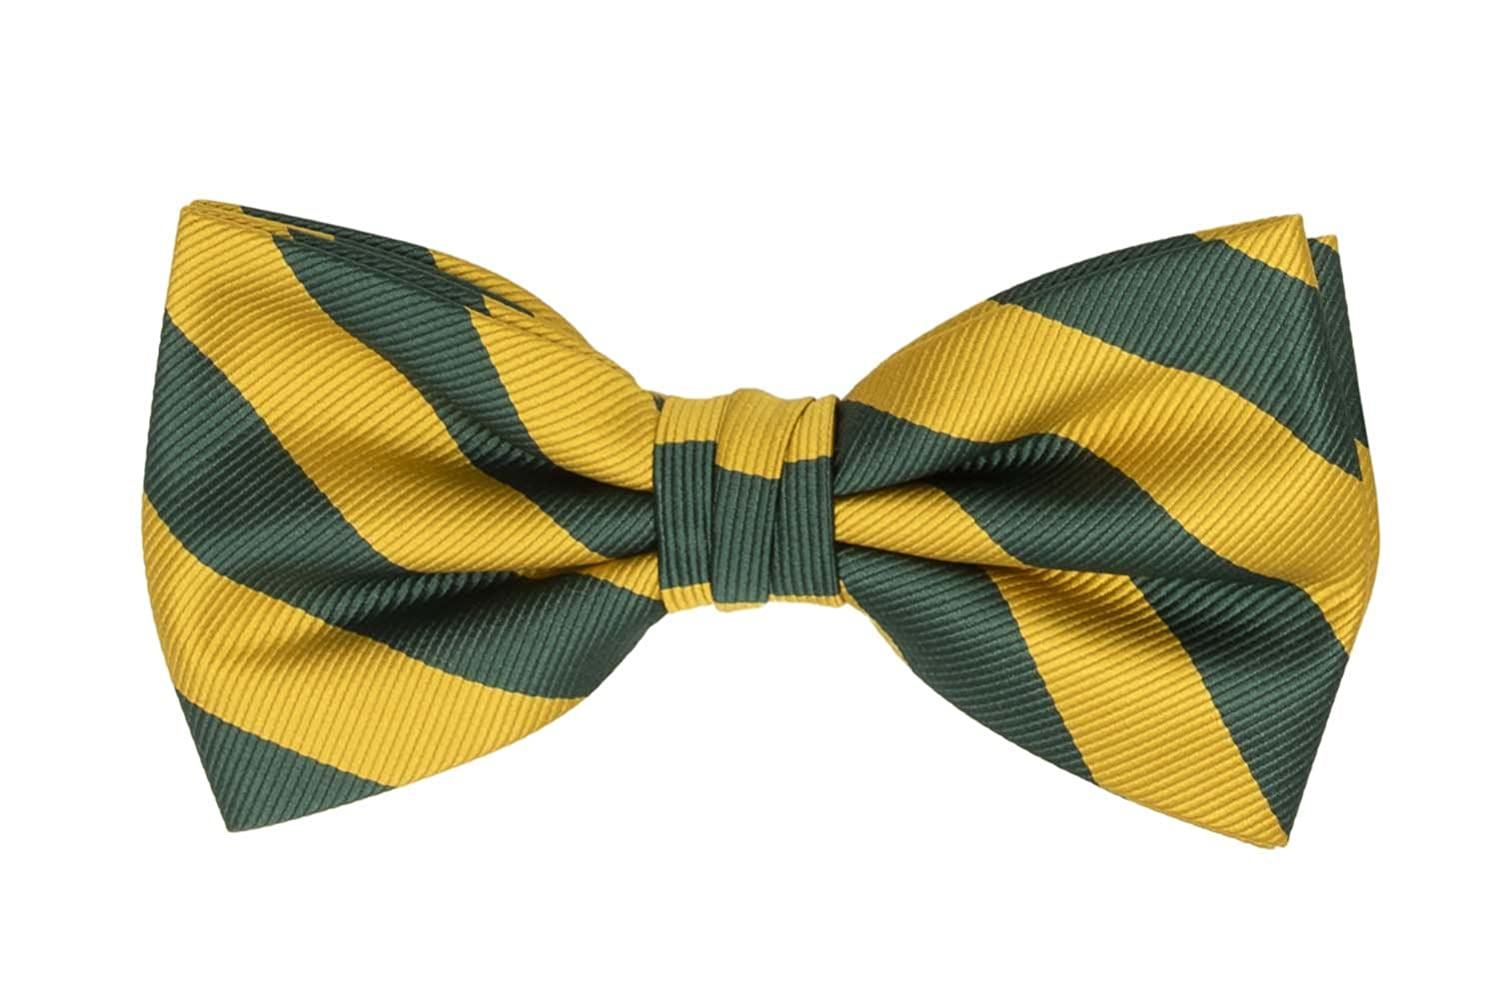 Jacob Alexander Stripe Woven Mens College Striped Pretied Bowtie Gold Black